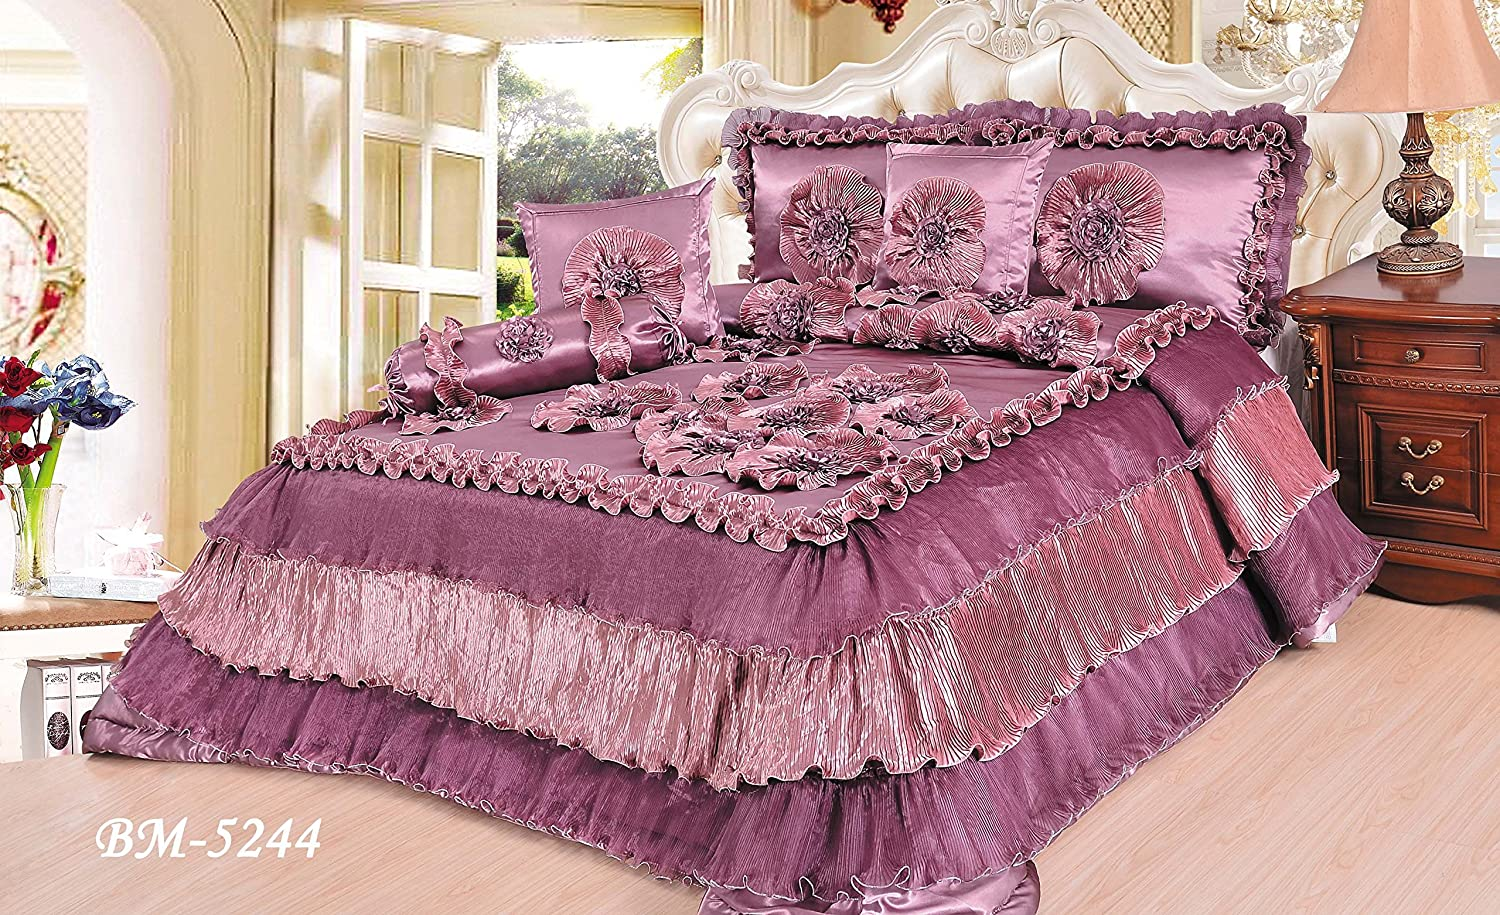 Tache 6 Pieces Romantic Mauve Passion Ruffle Comforter Quilt Set, King Size